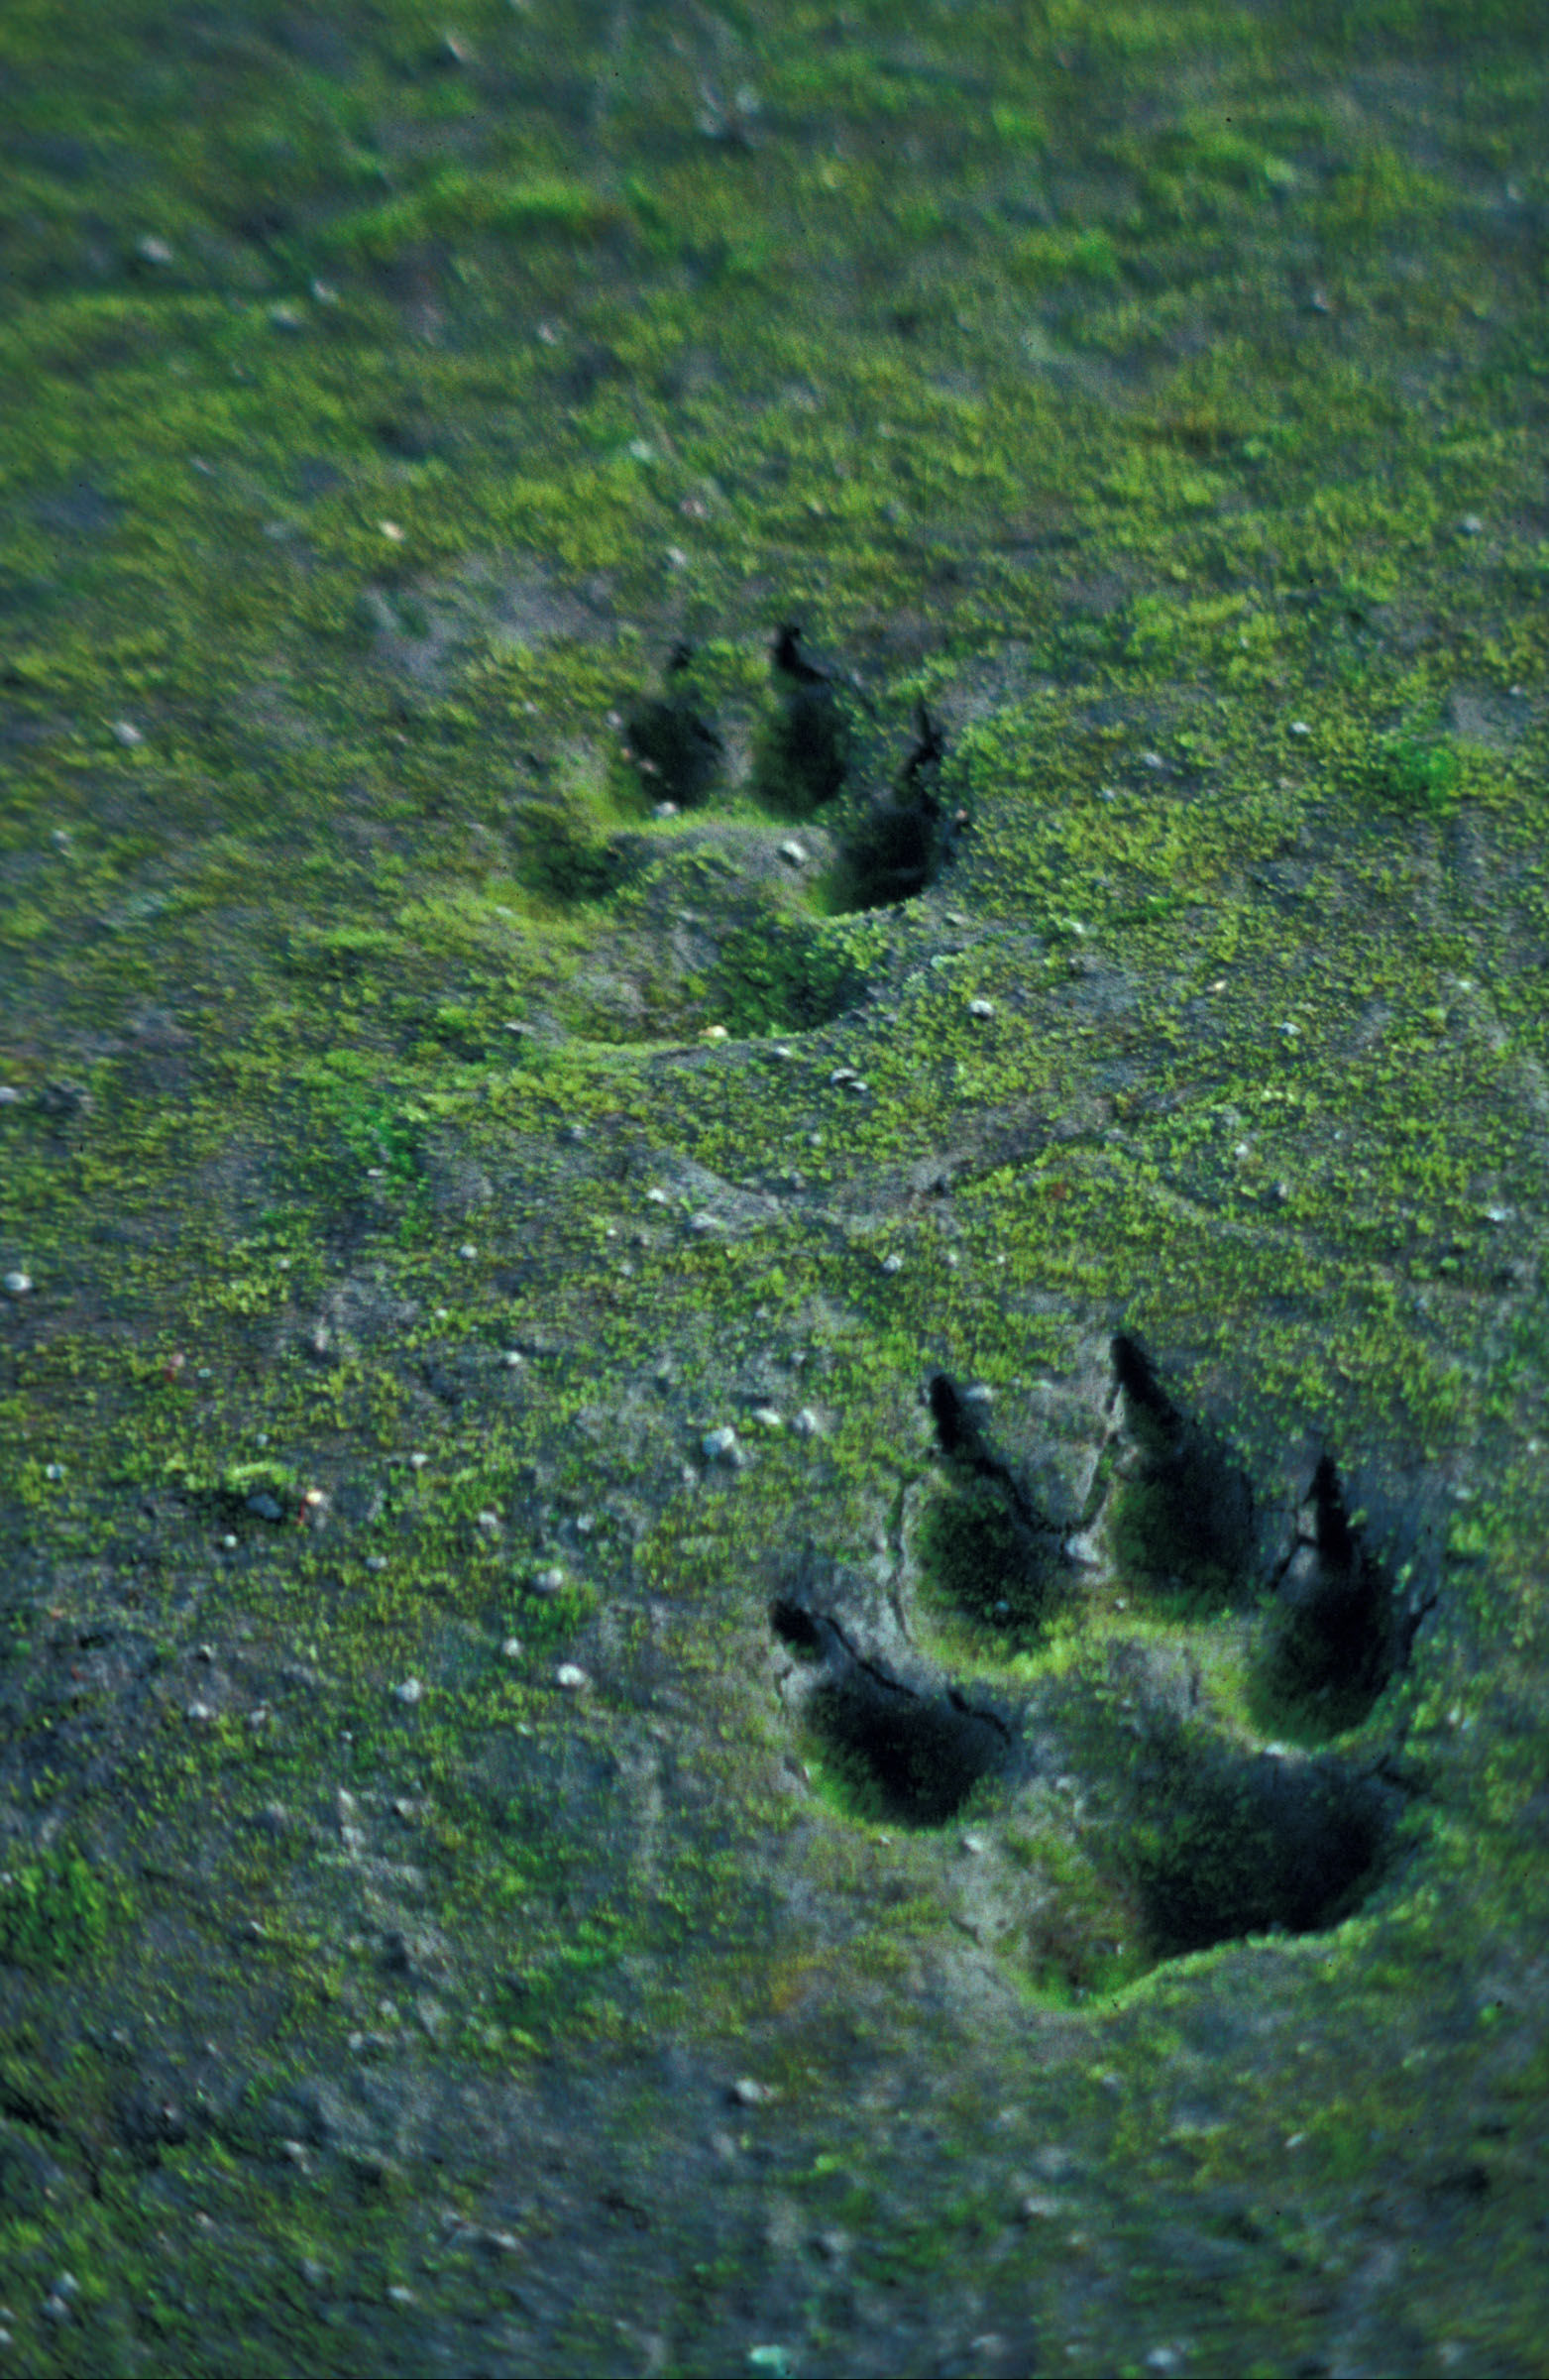 Canis lupus tracks in sand